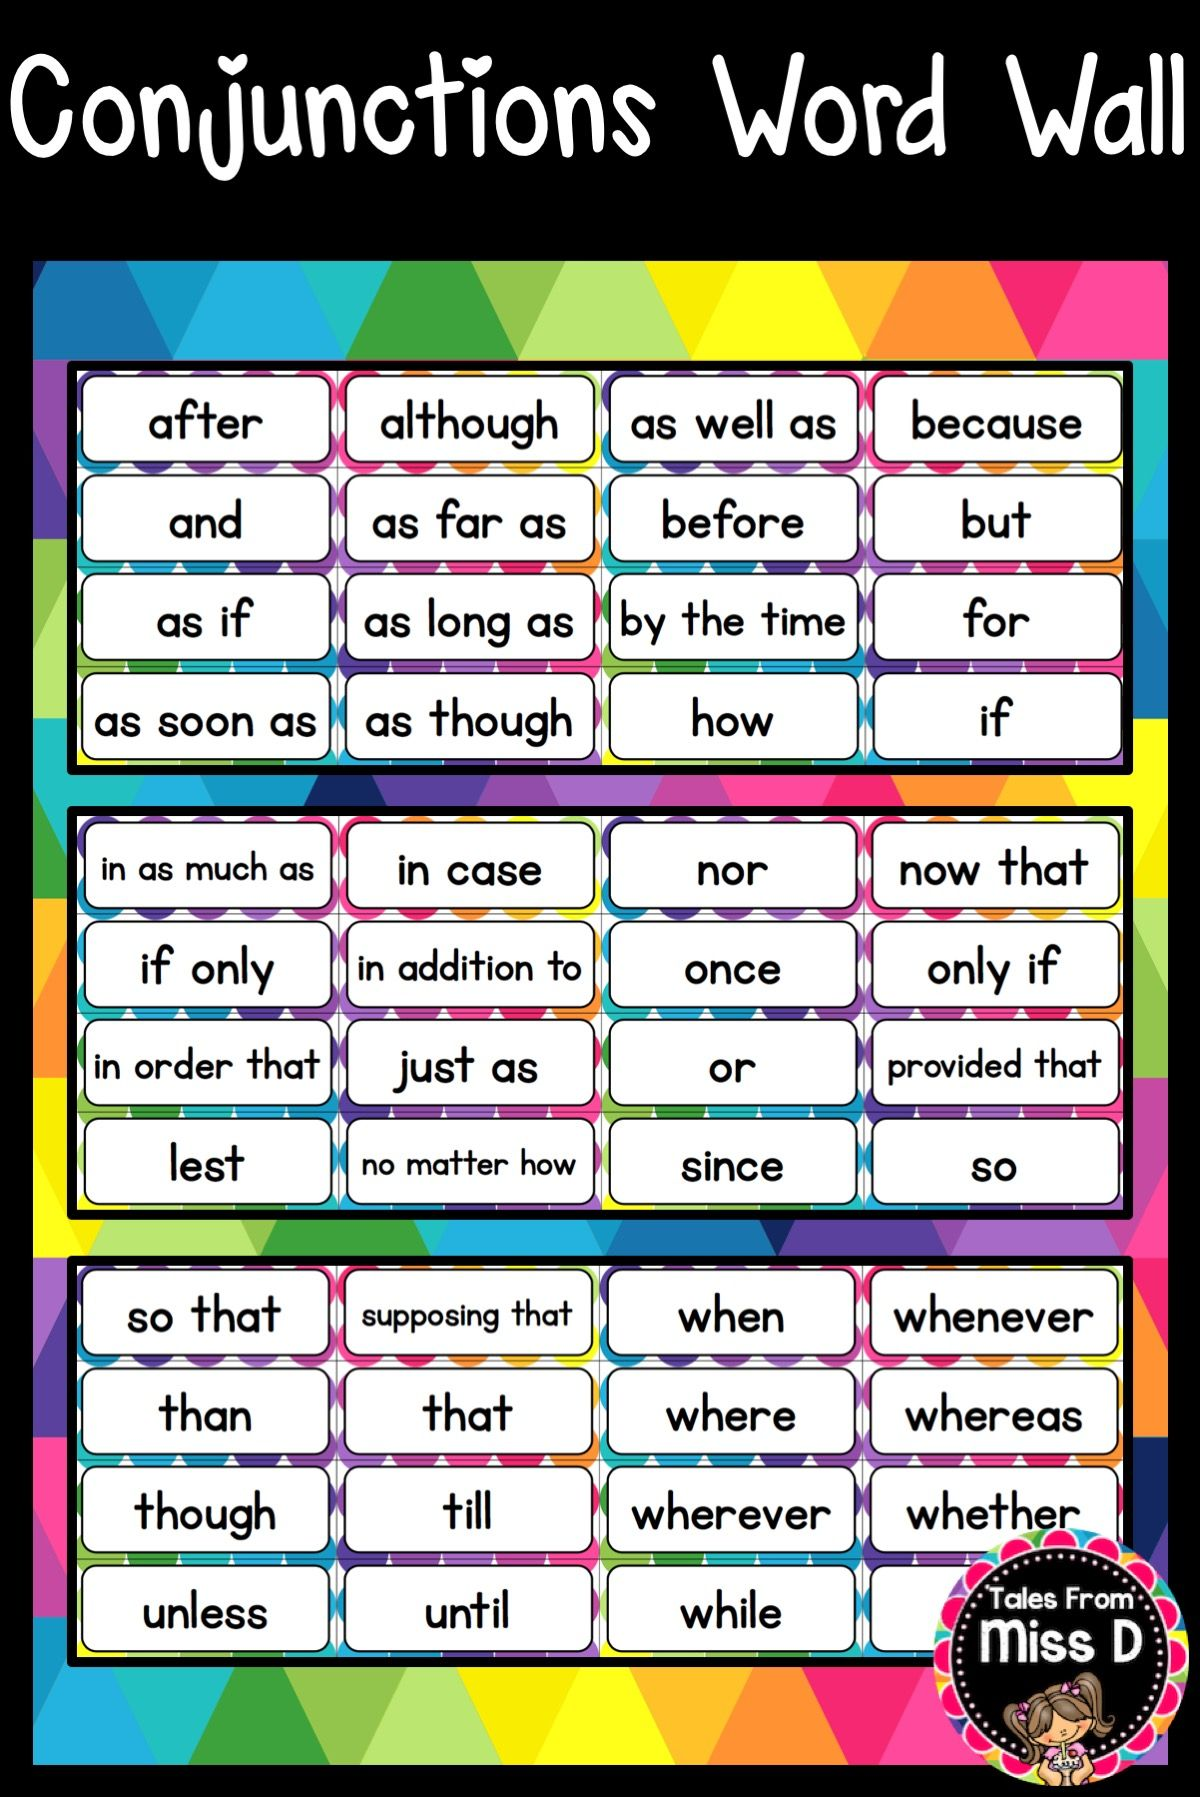 Conjunctions Word Wall